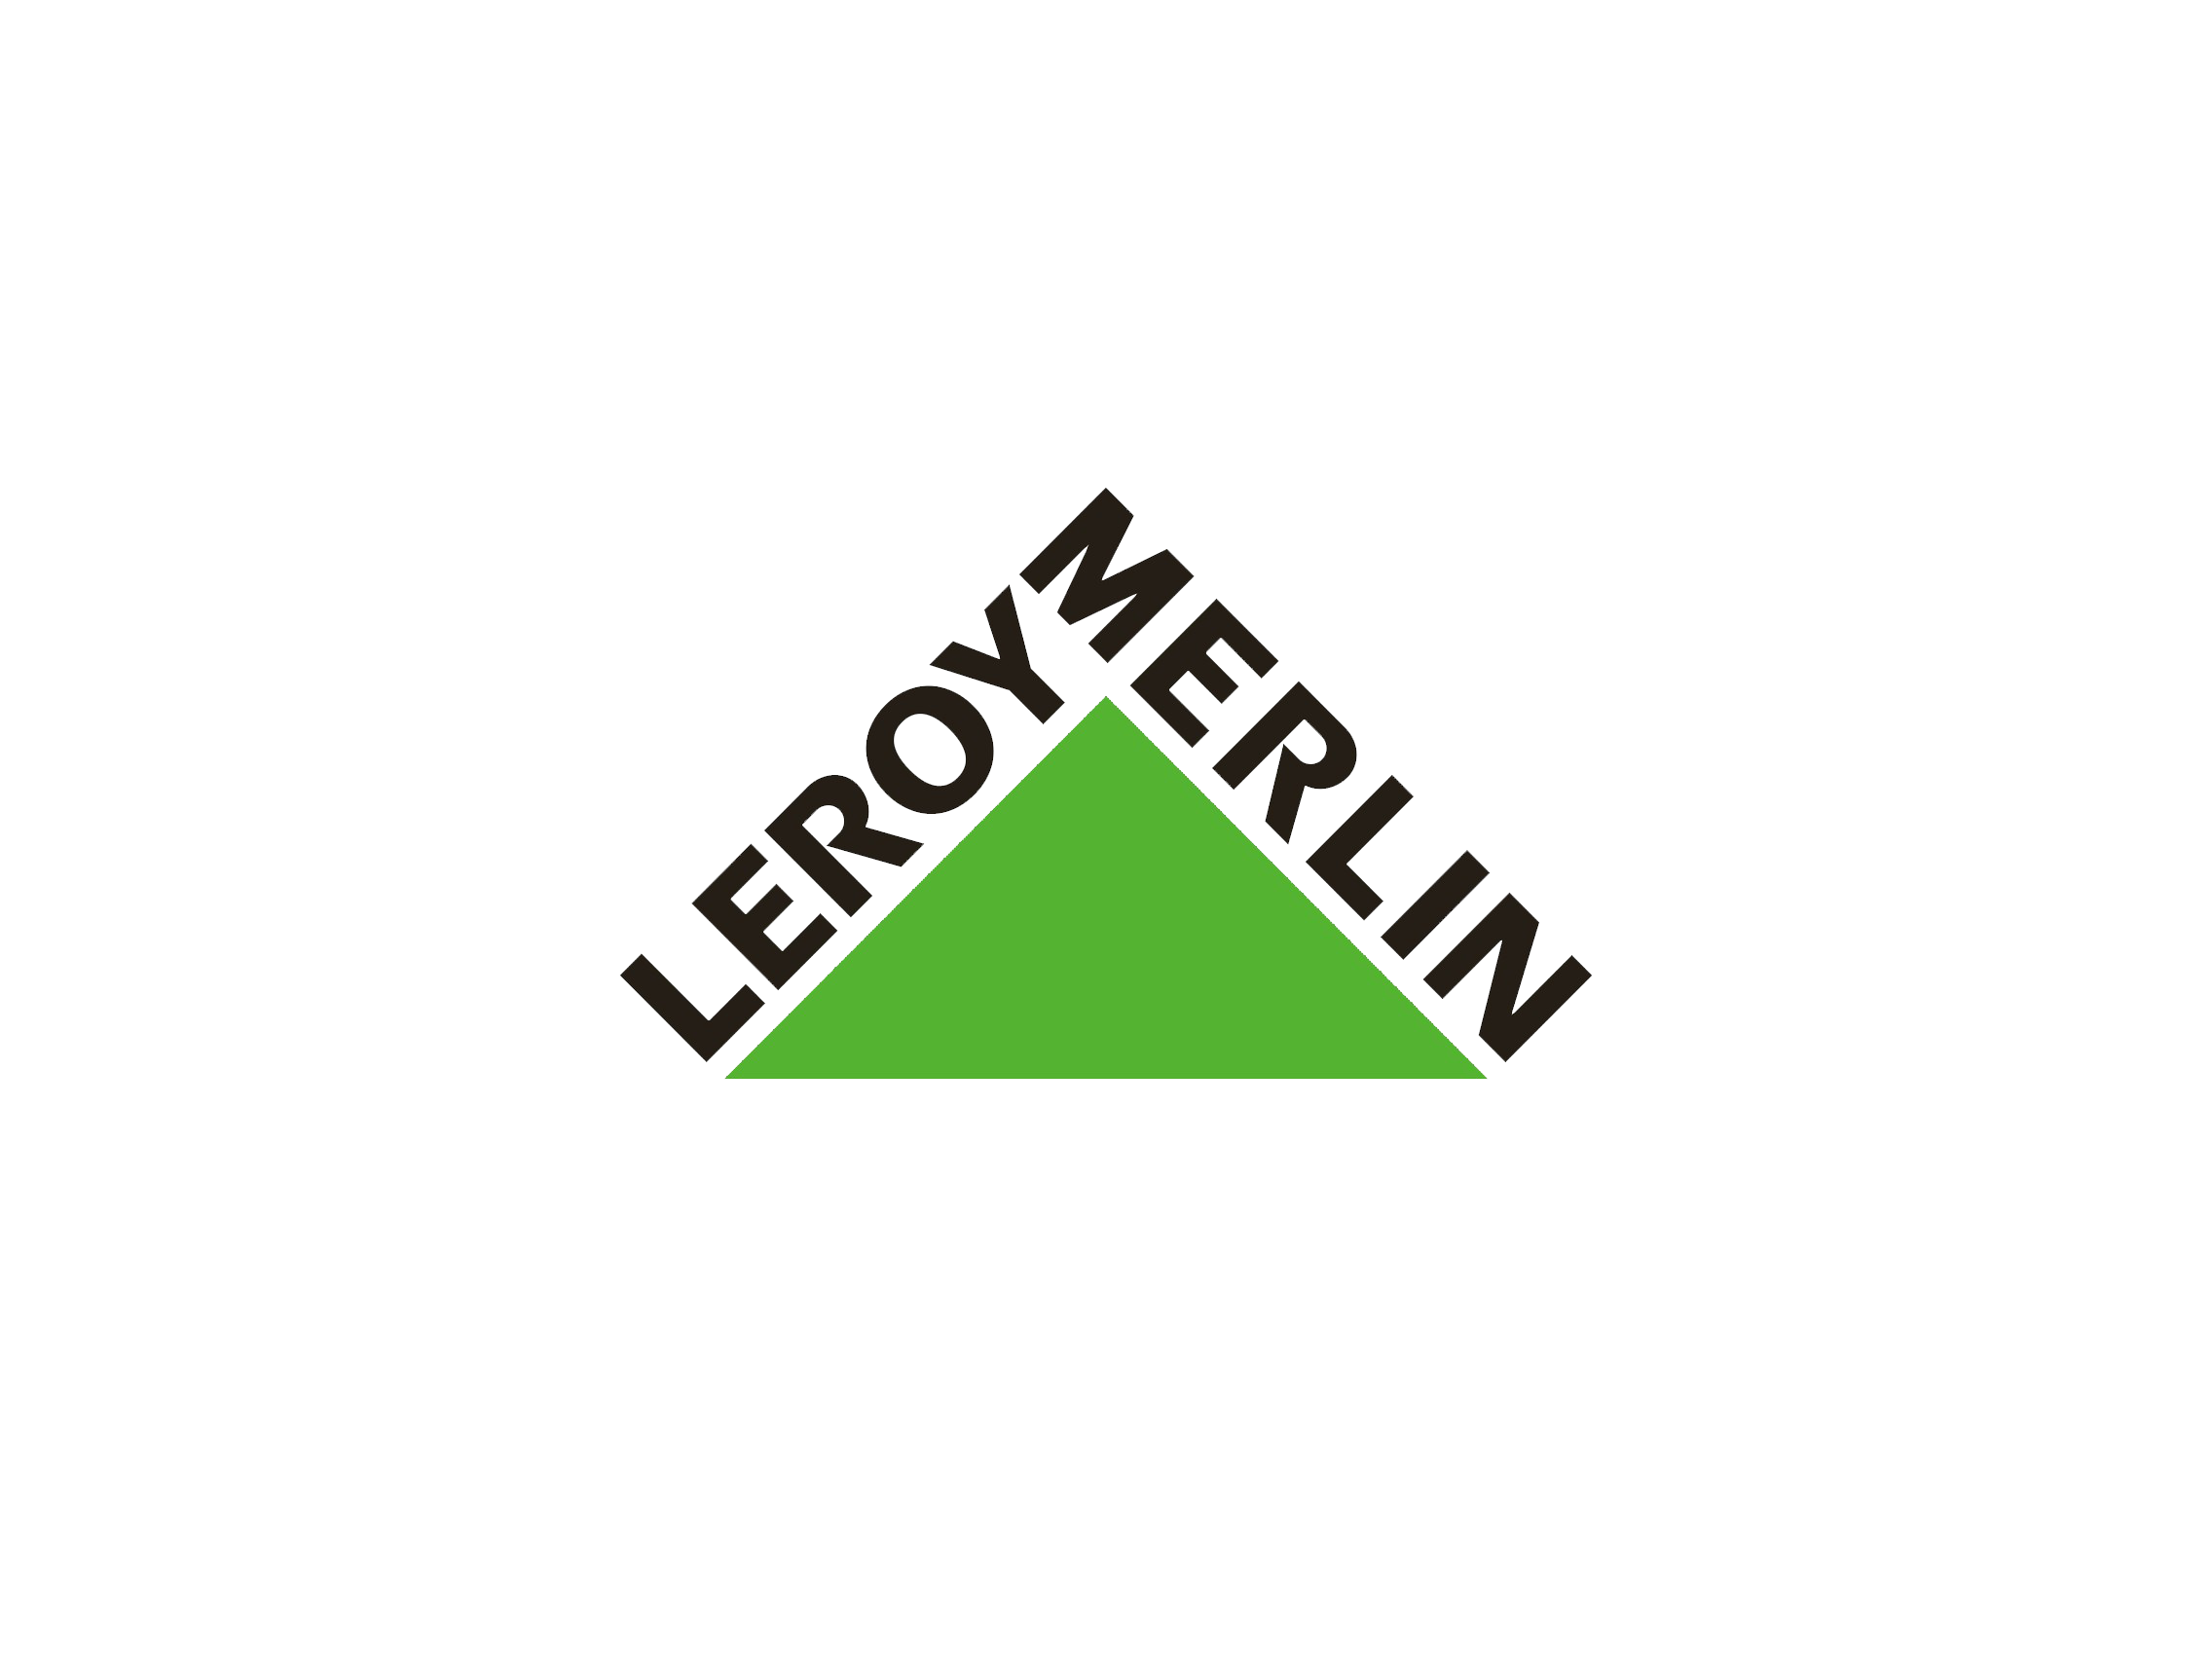 Leroy merlin logo logok for Leroy merlin scalette